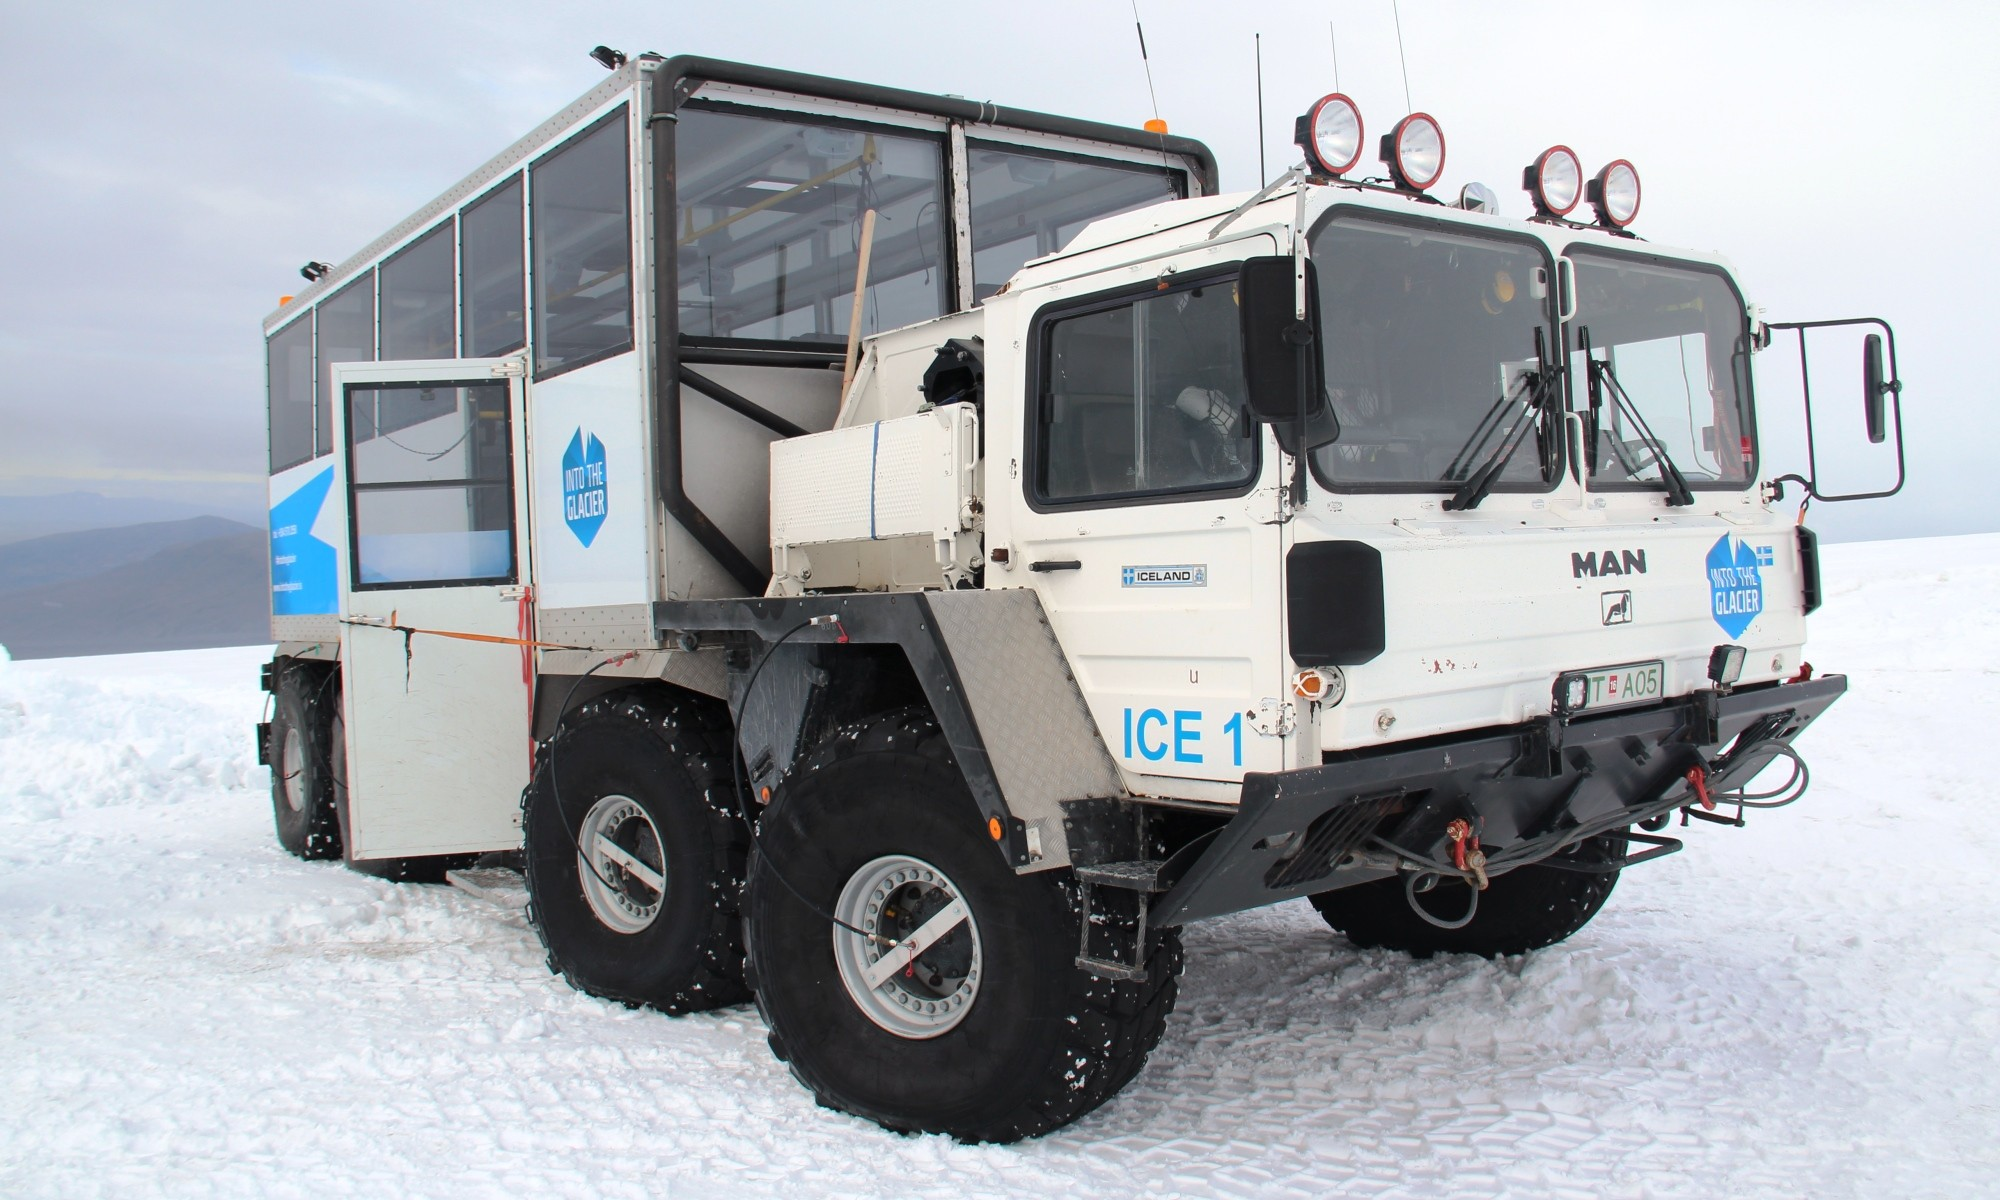 Ice truck for climbing glaciers